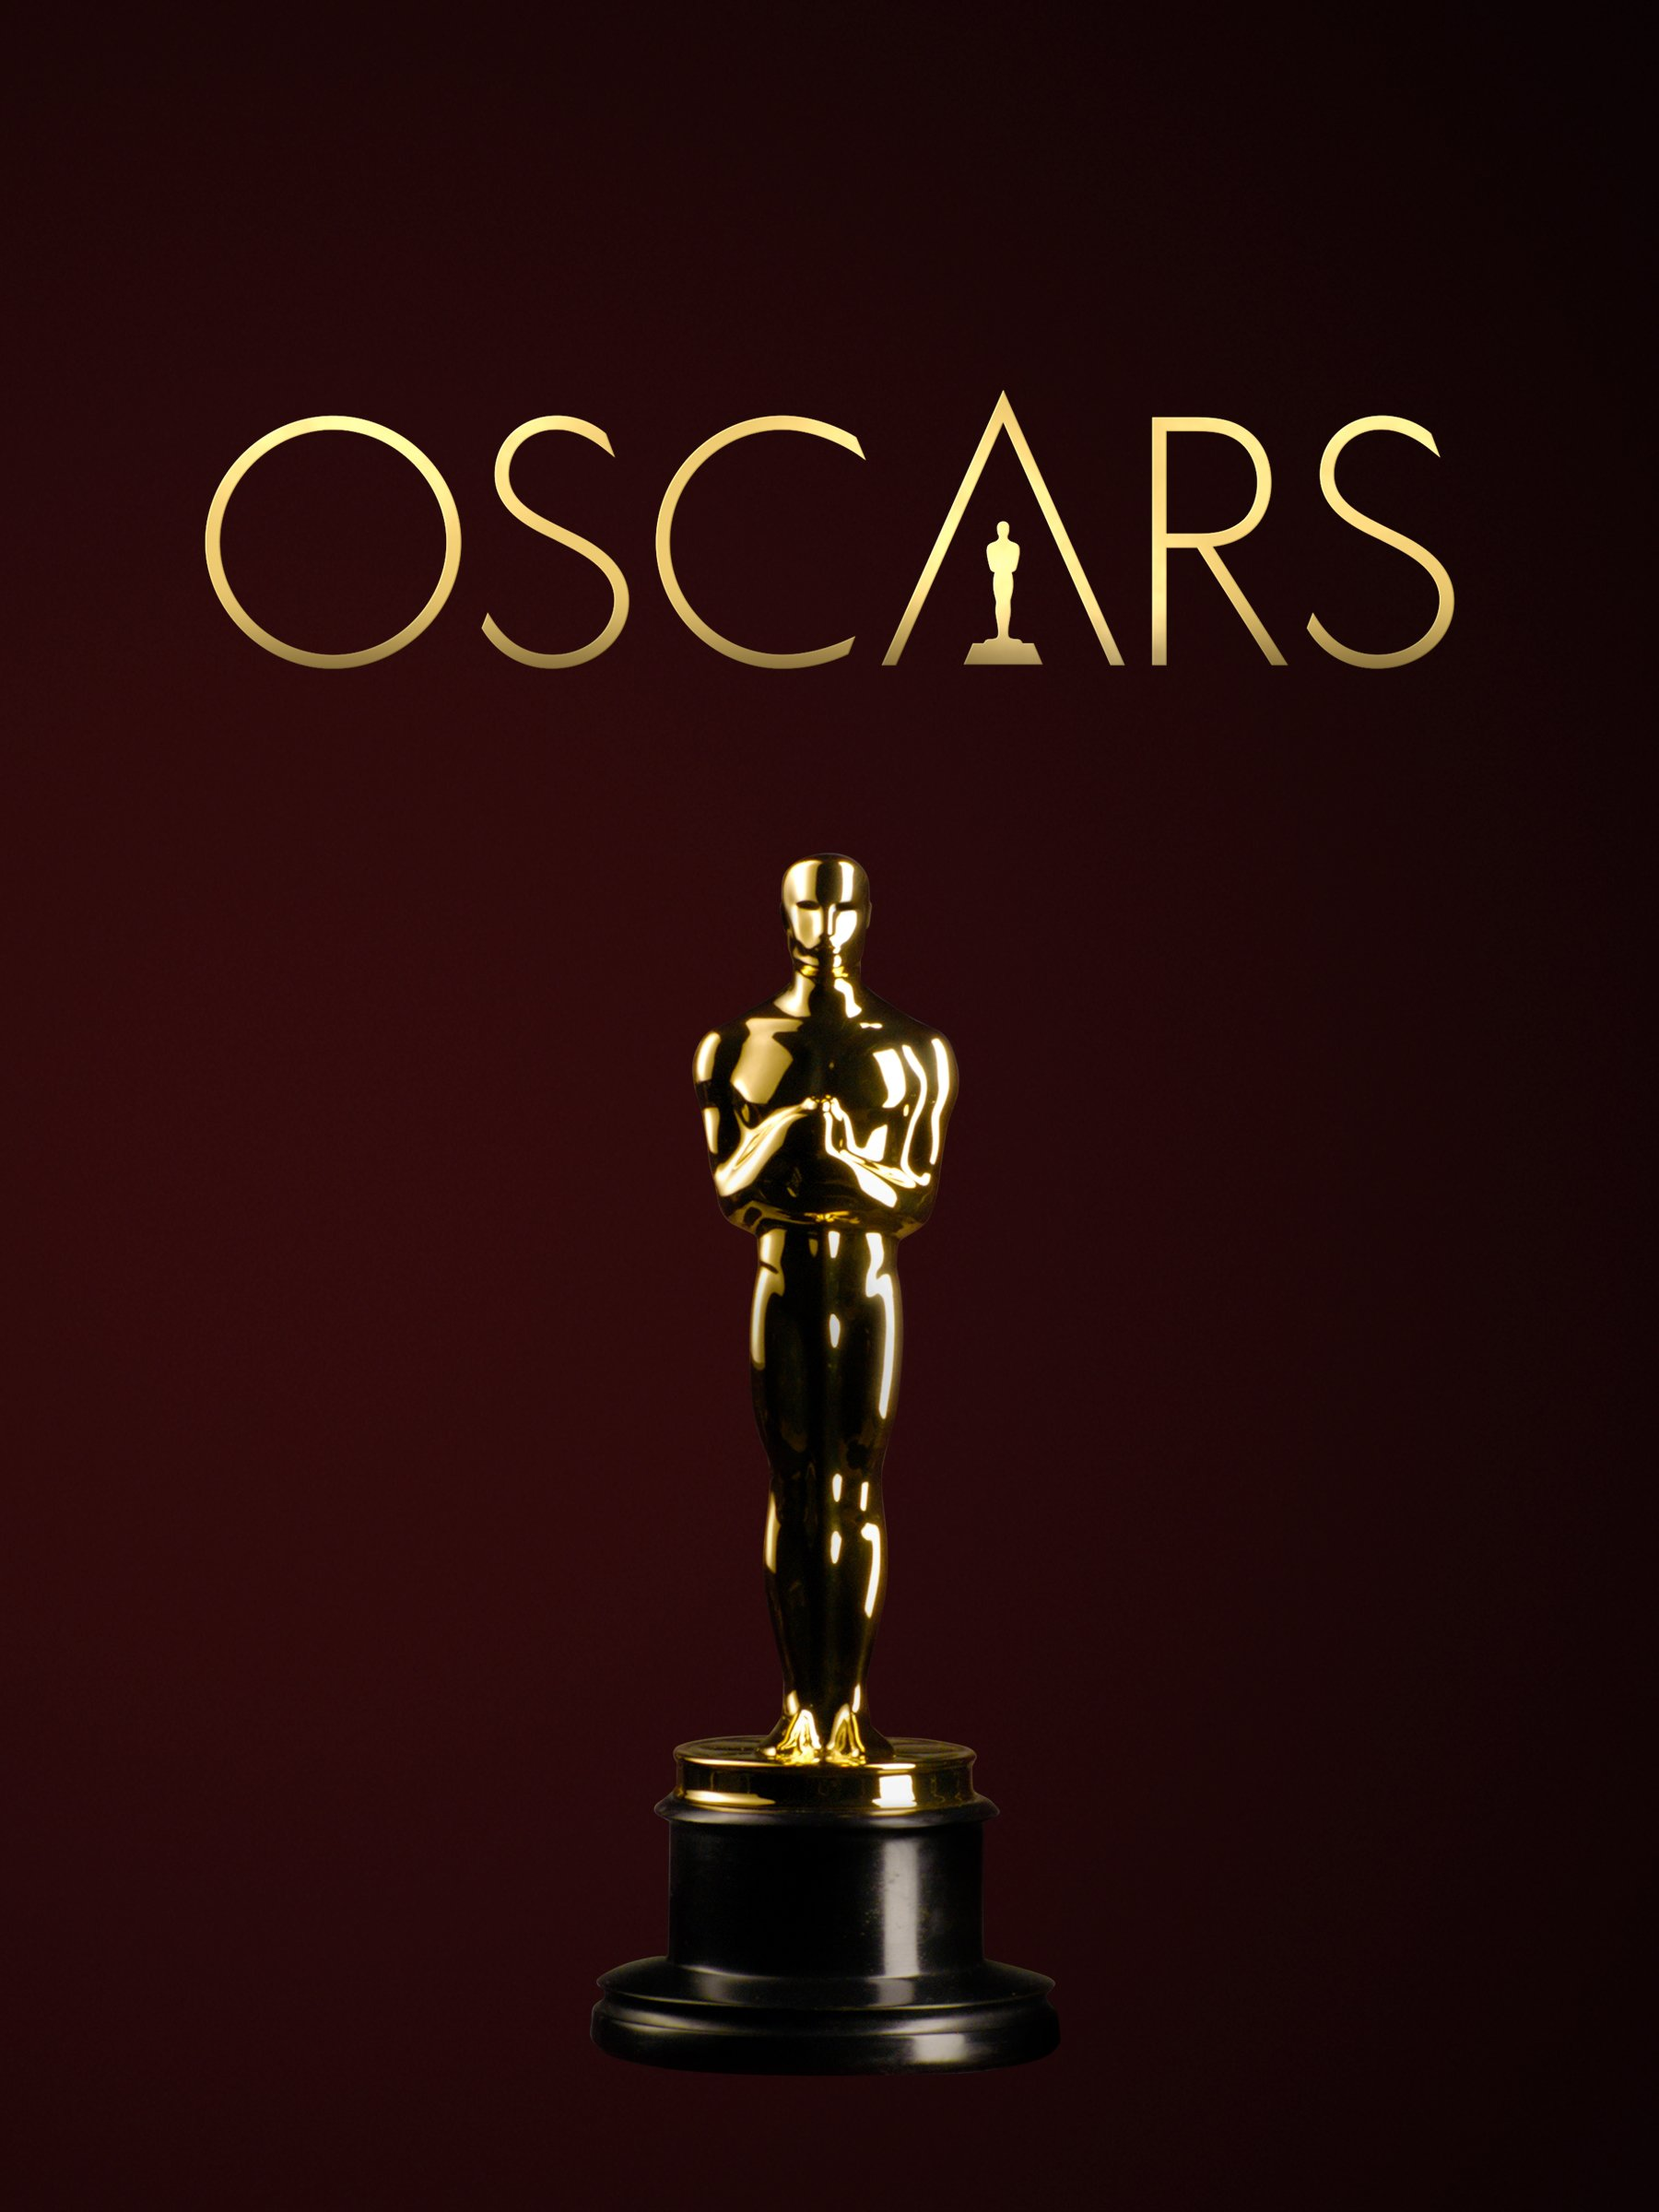 Oscar Nominations 2020 List: Nominees by Category - Oscars ...